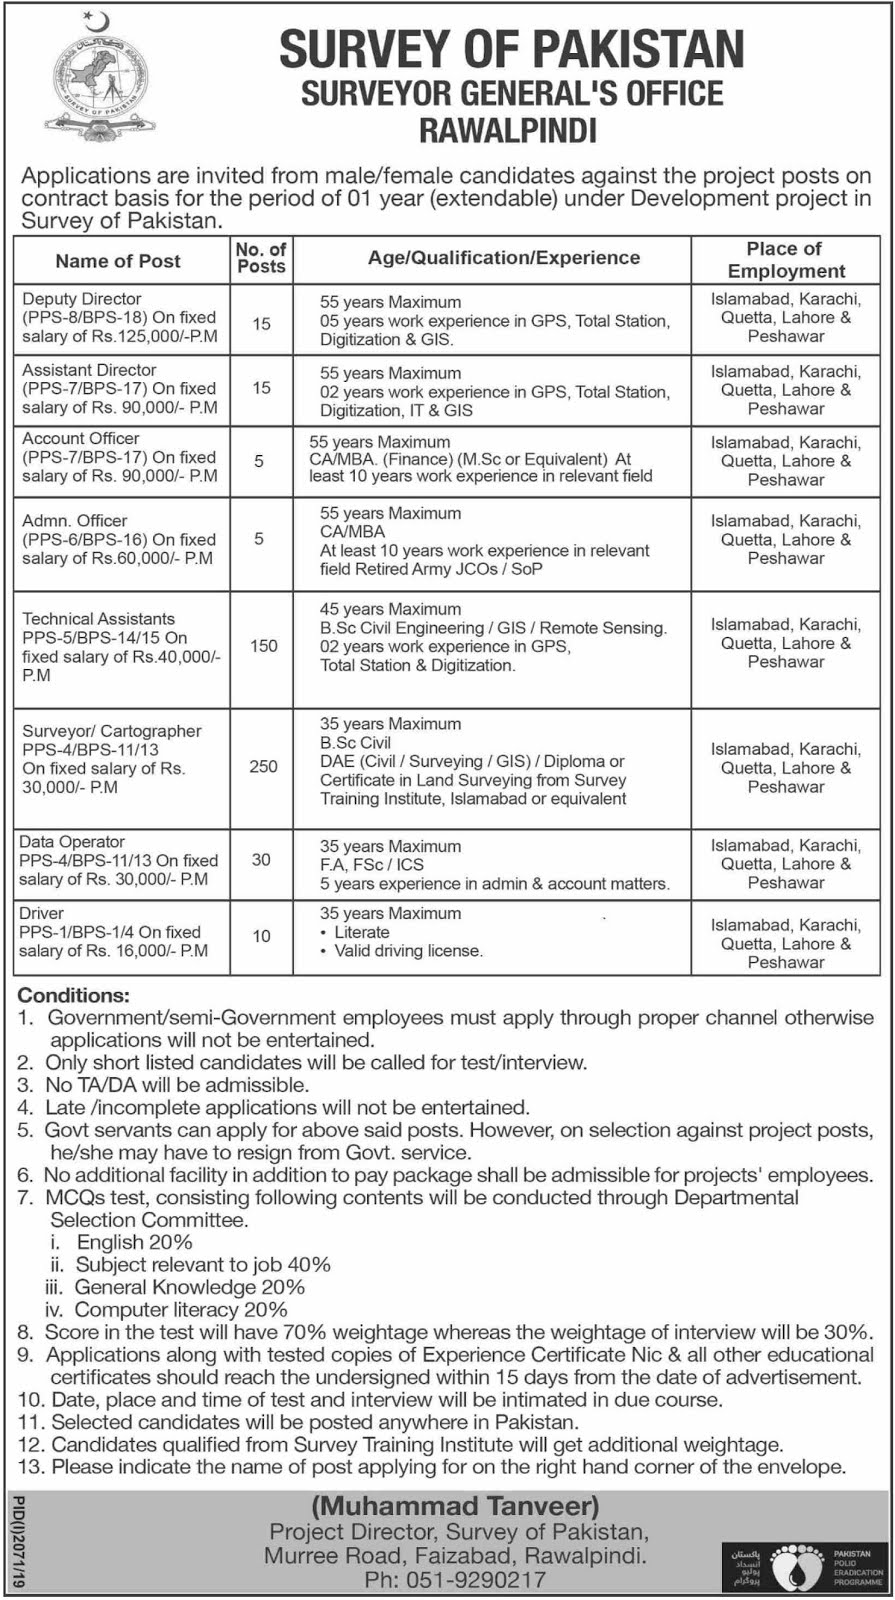 survey of pakistan jobs 2019 application form government of pakistan survey of pakistan jobs 2019 latest survey of pakistan internship 2019 national survey of pakistan jobs 2019 survey of pakistan jobs 2018 survey of pakistan 2019 job in survey geological survey of pakistan jobs